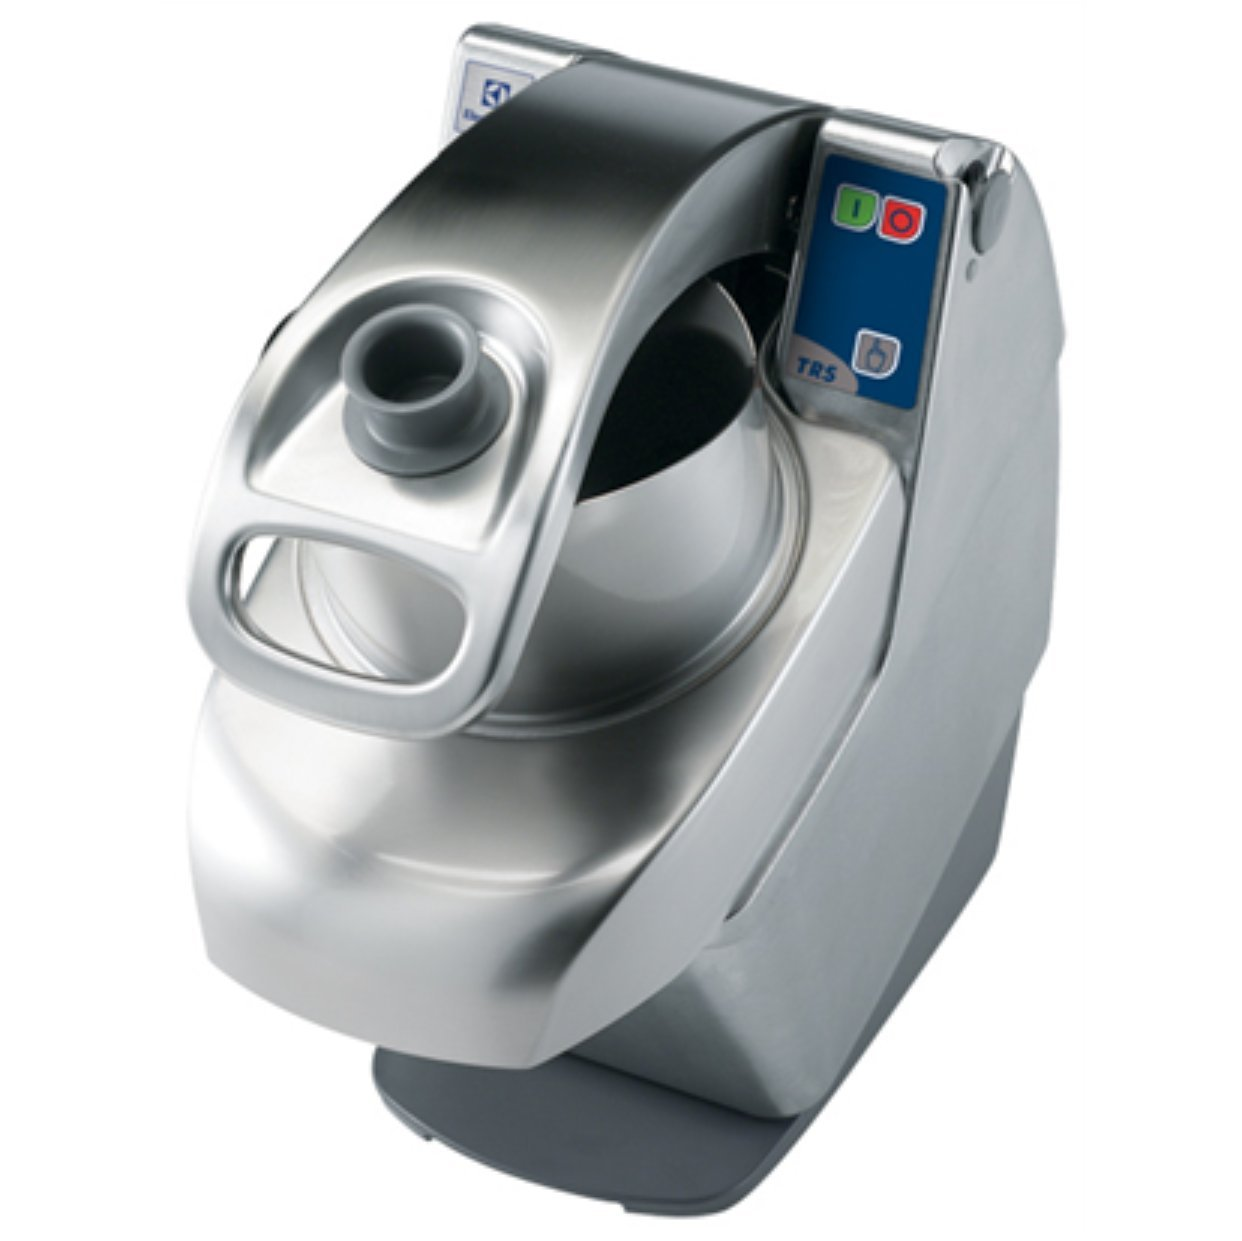 Electrolux 603802 TRS Vegetable Slicers, Stainless Steel by Electrolux